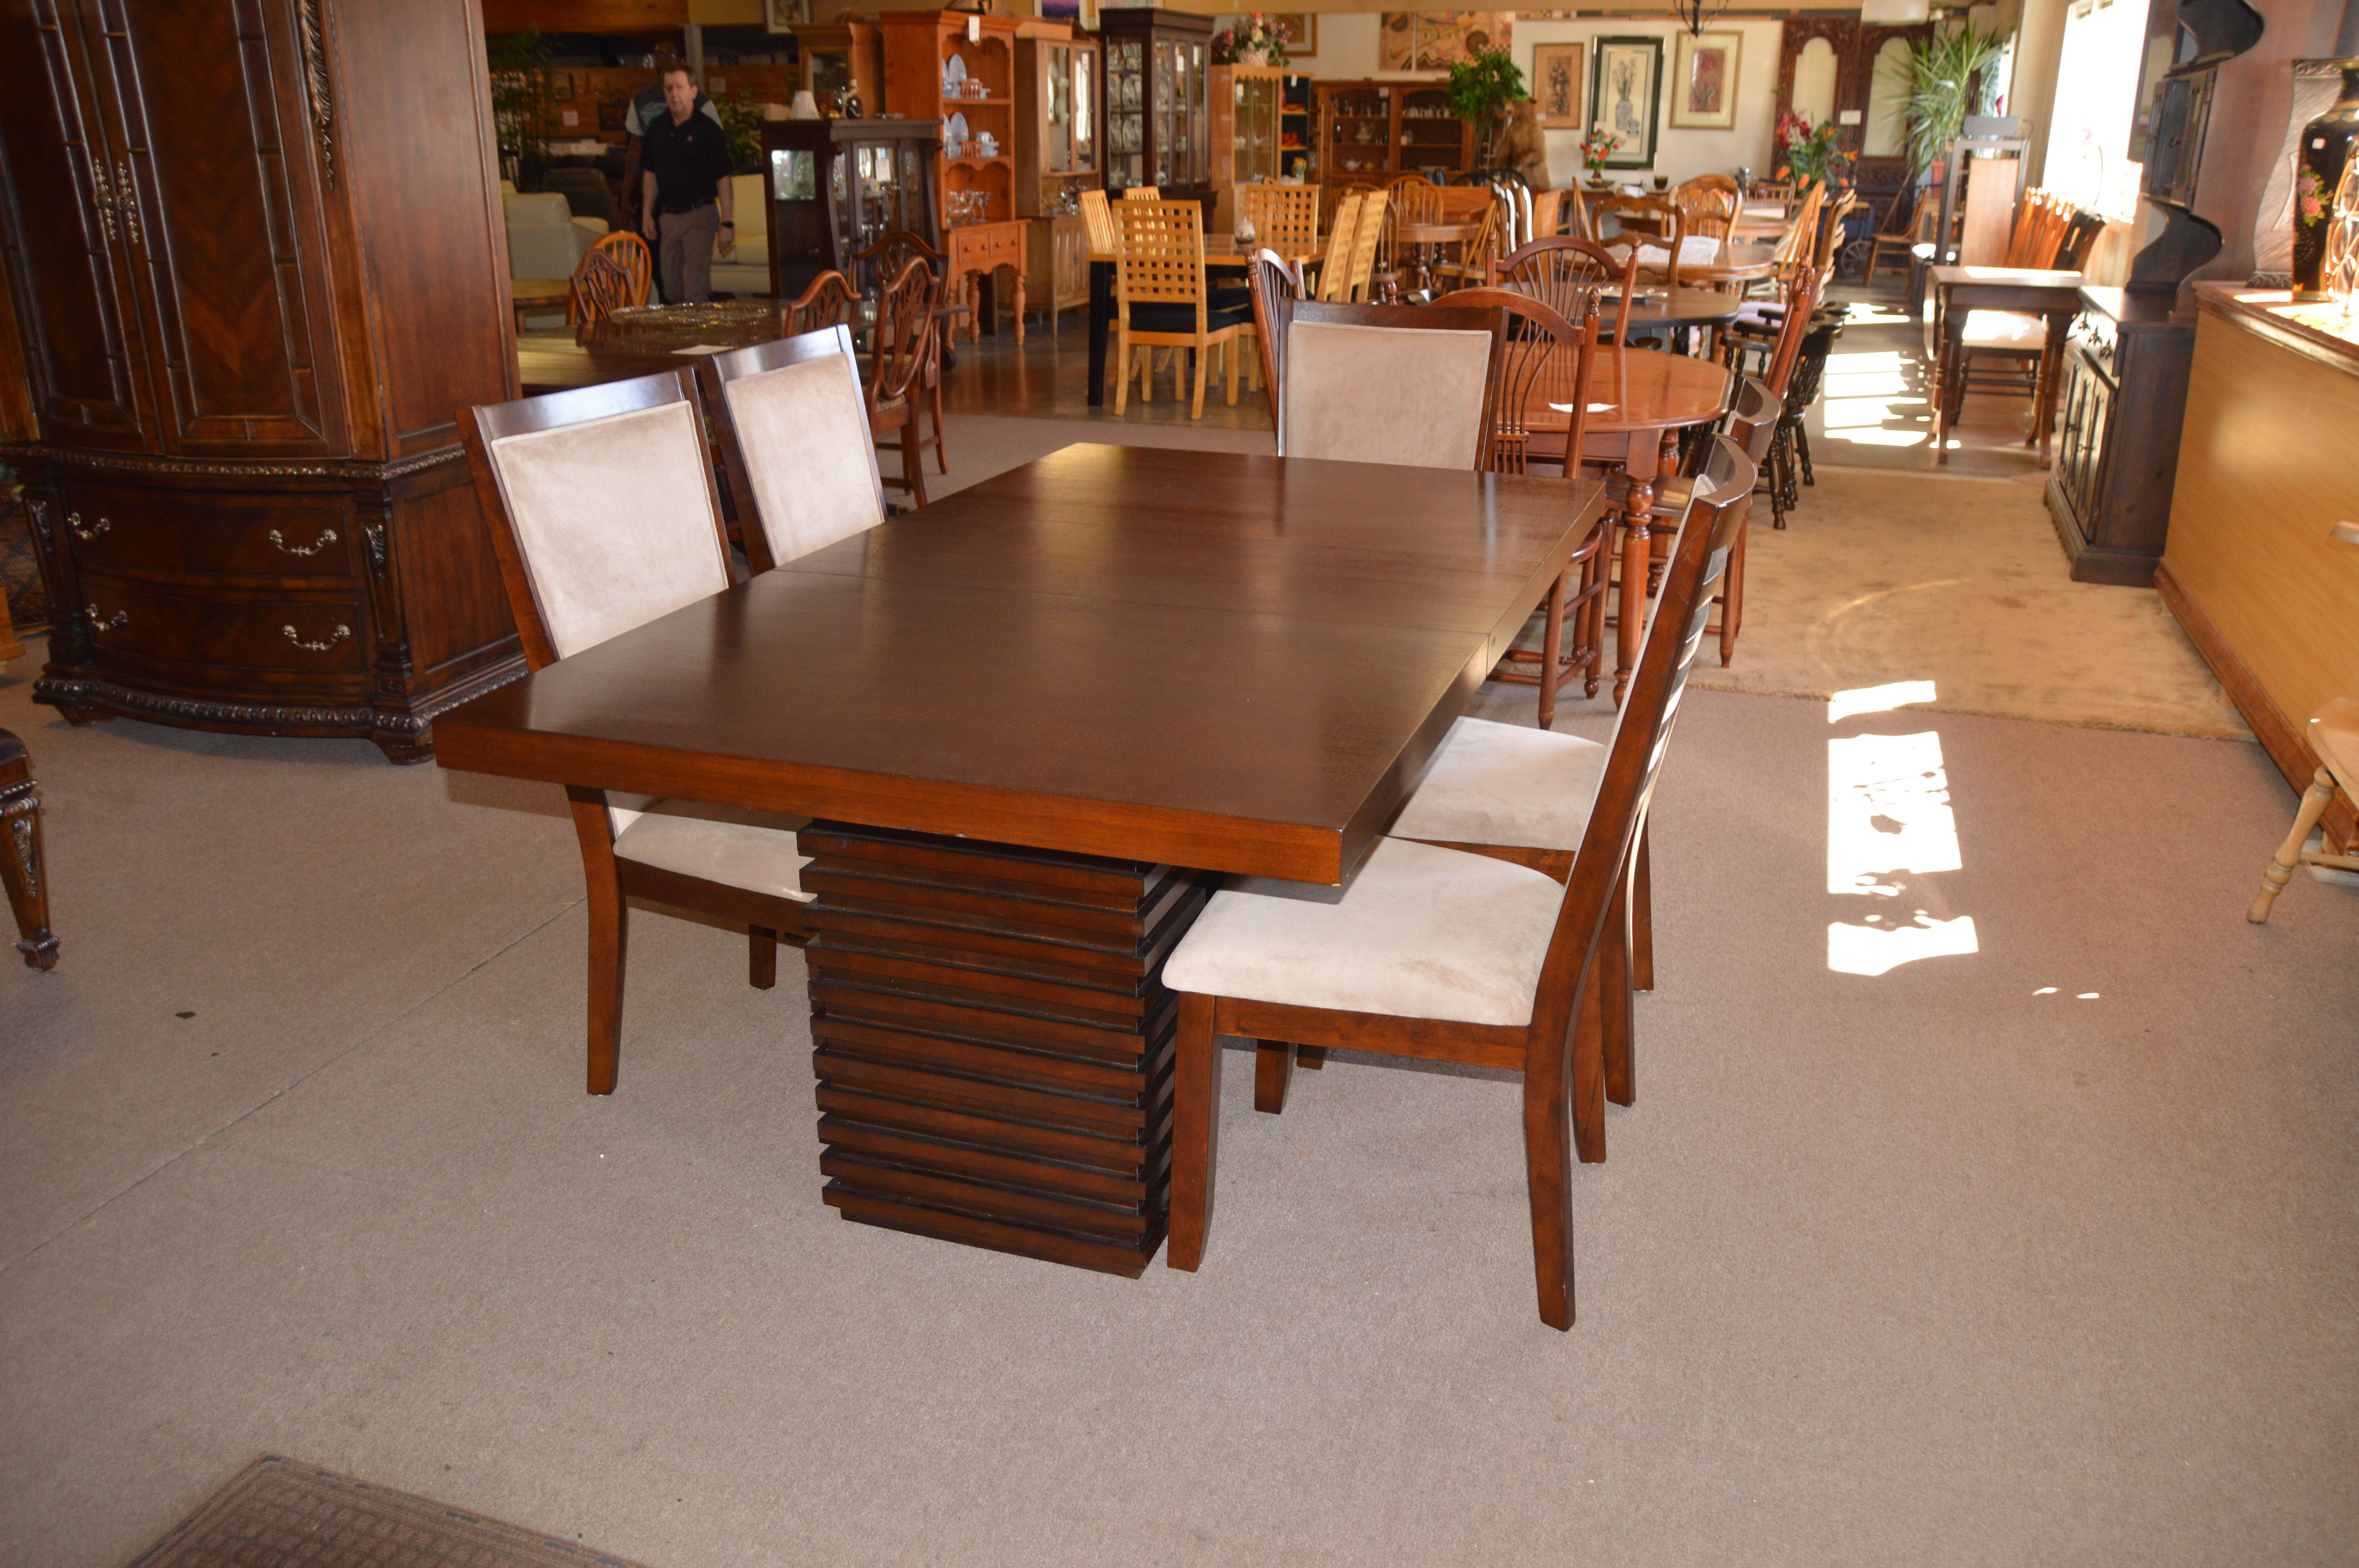 Beautiful Table Leaf and 6 Chairs one not pictured to show base of